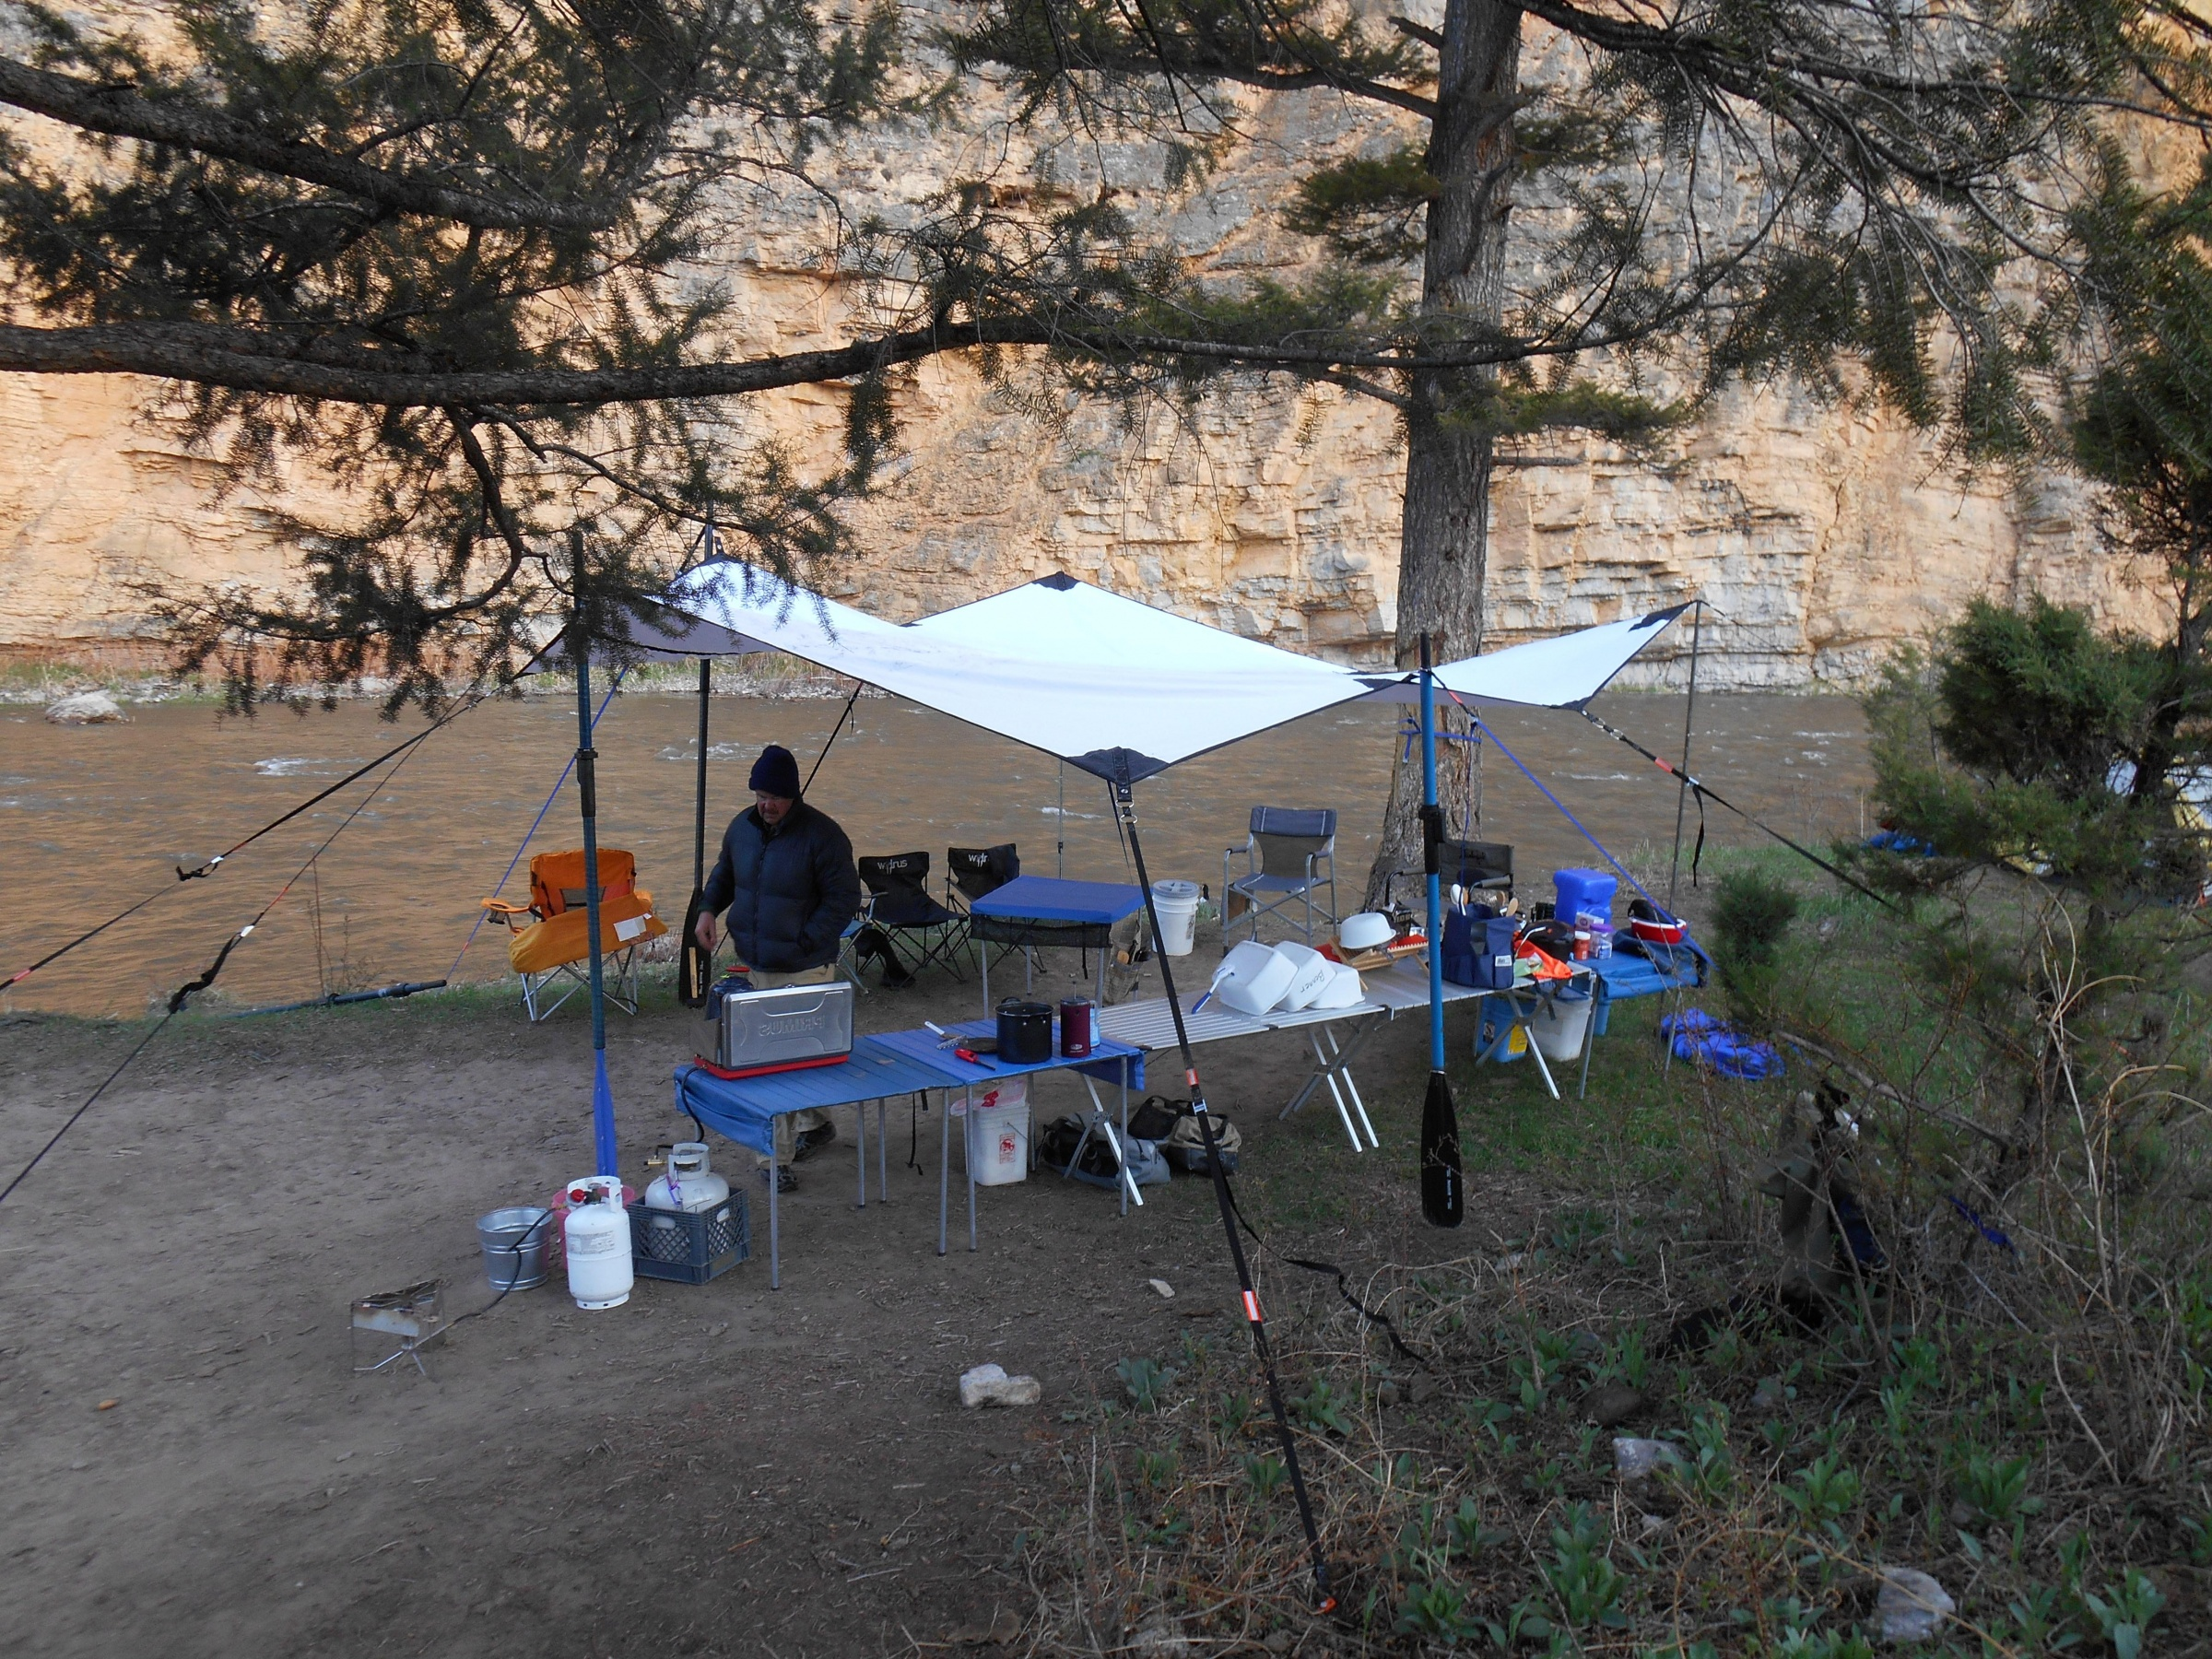 Click image for larger version  Name:Tarp on Smith River May 2013 #2.jpg Views:1177 Size:1.92 MB ID:6509